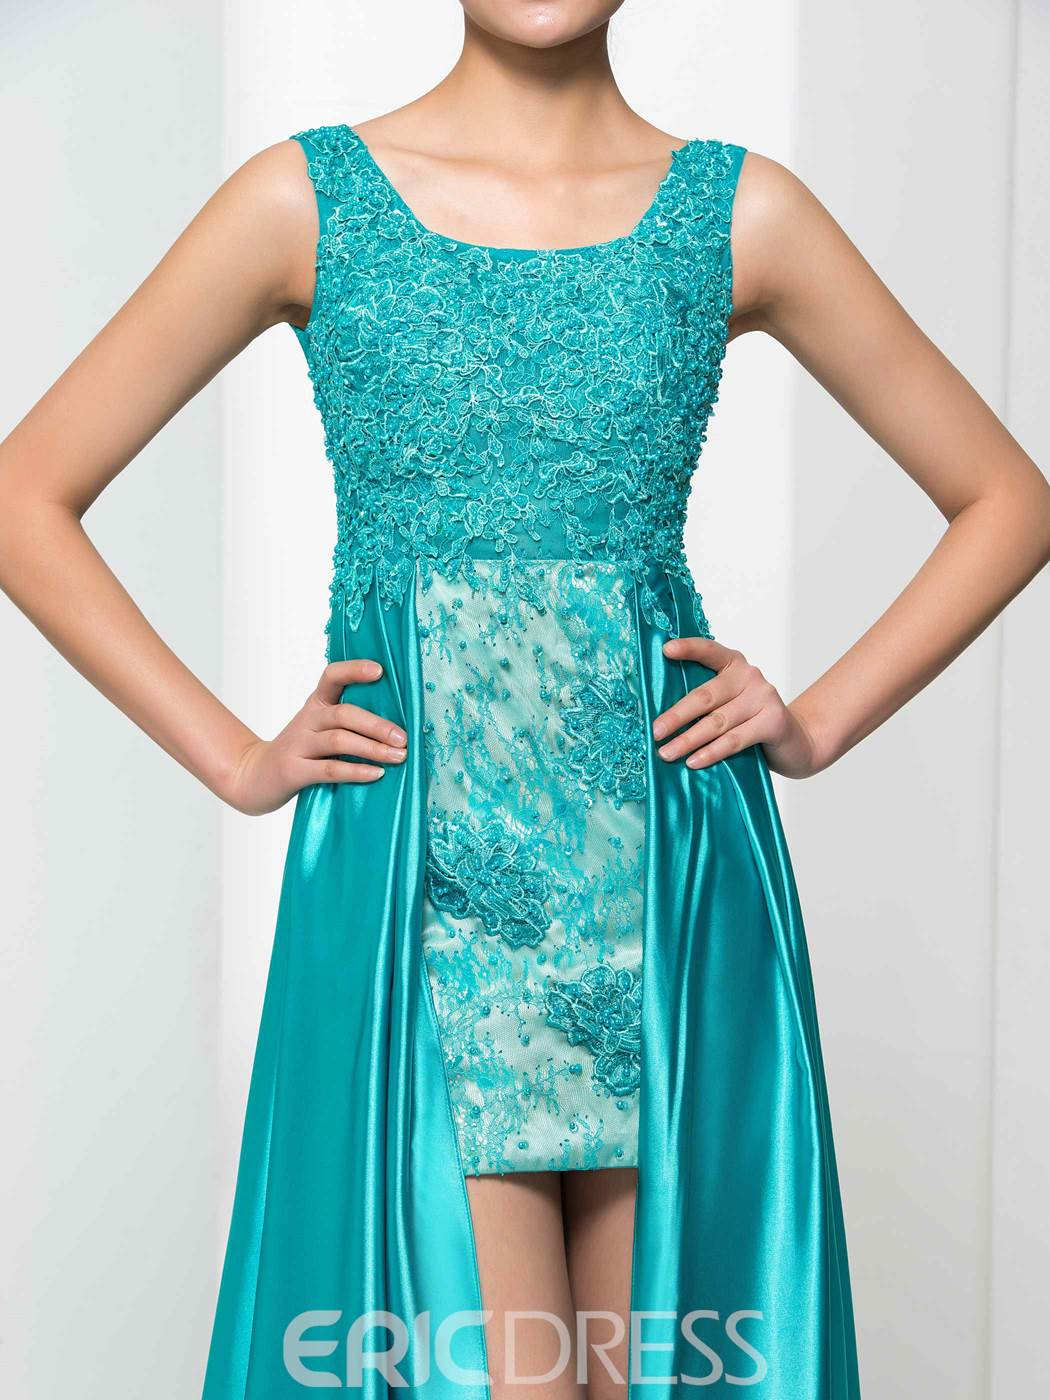 Ericdress Square Neck Appliques Beading High Low Prom Dress